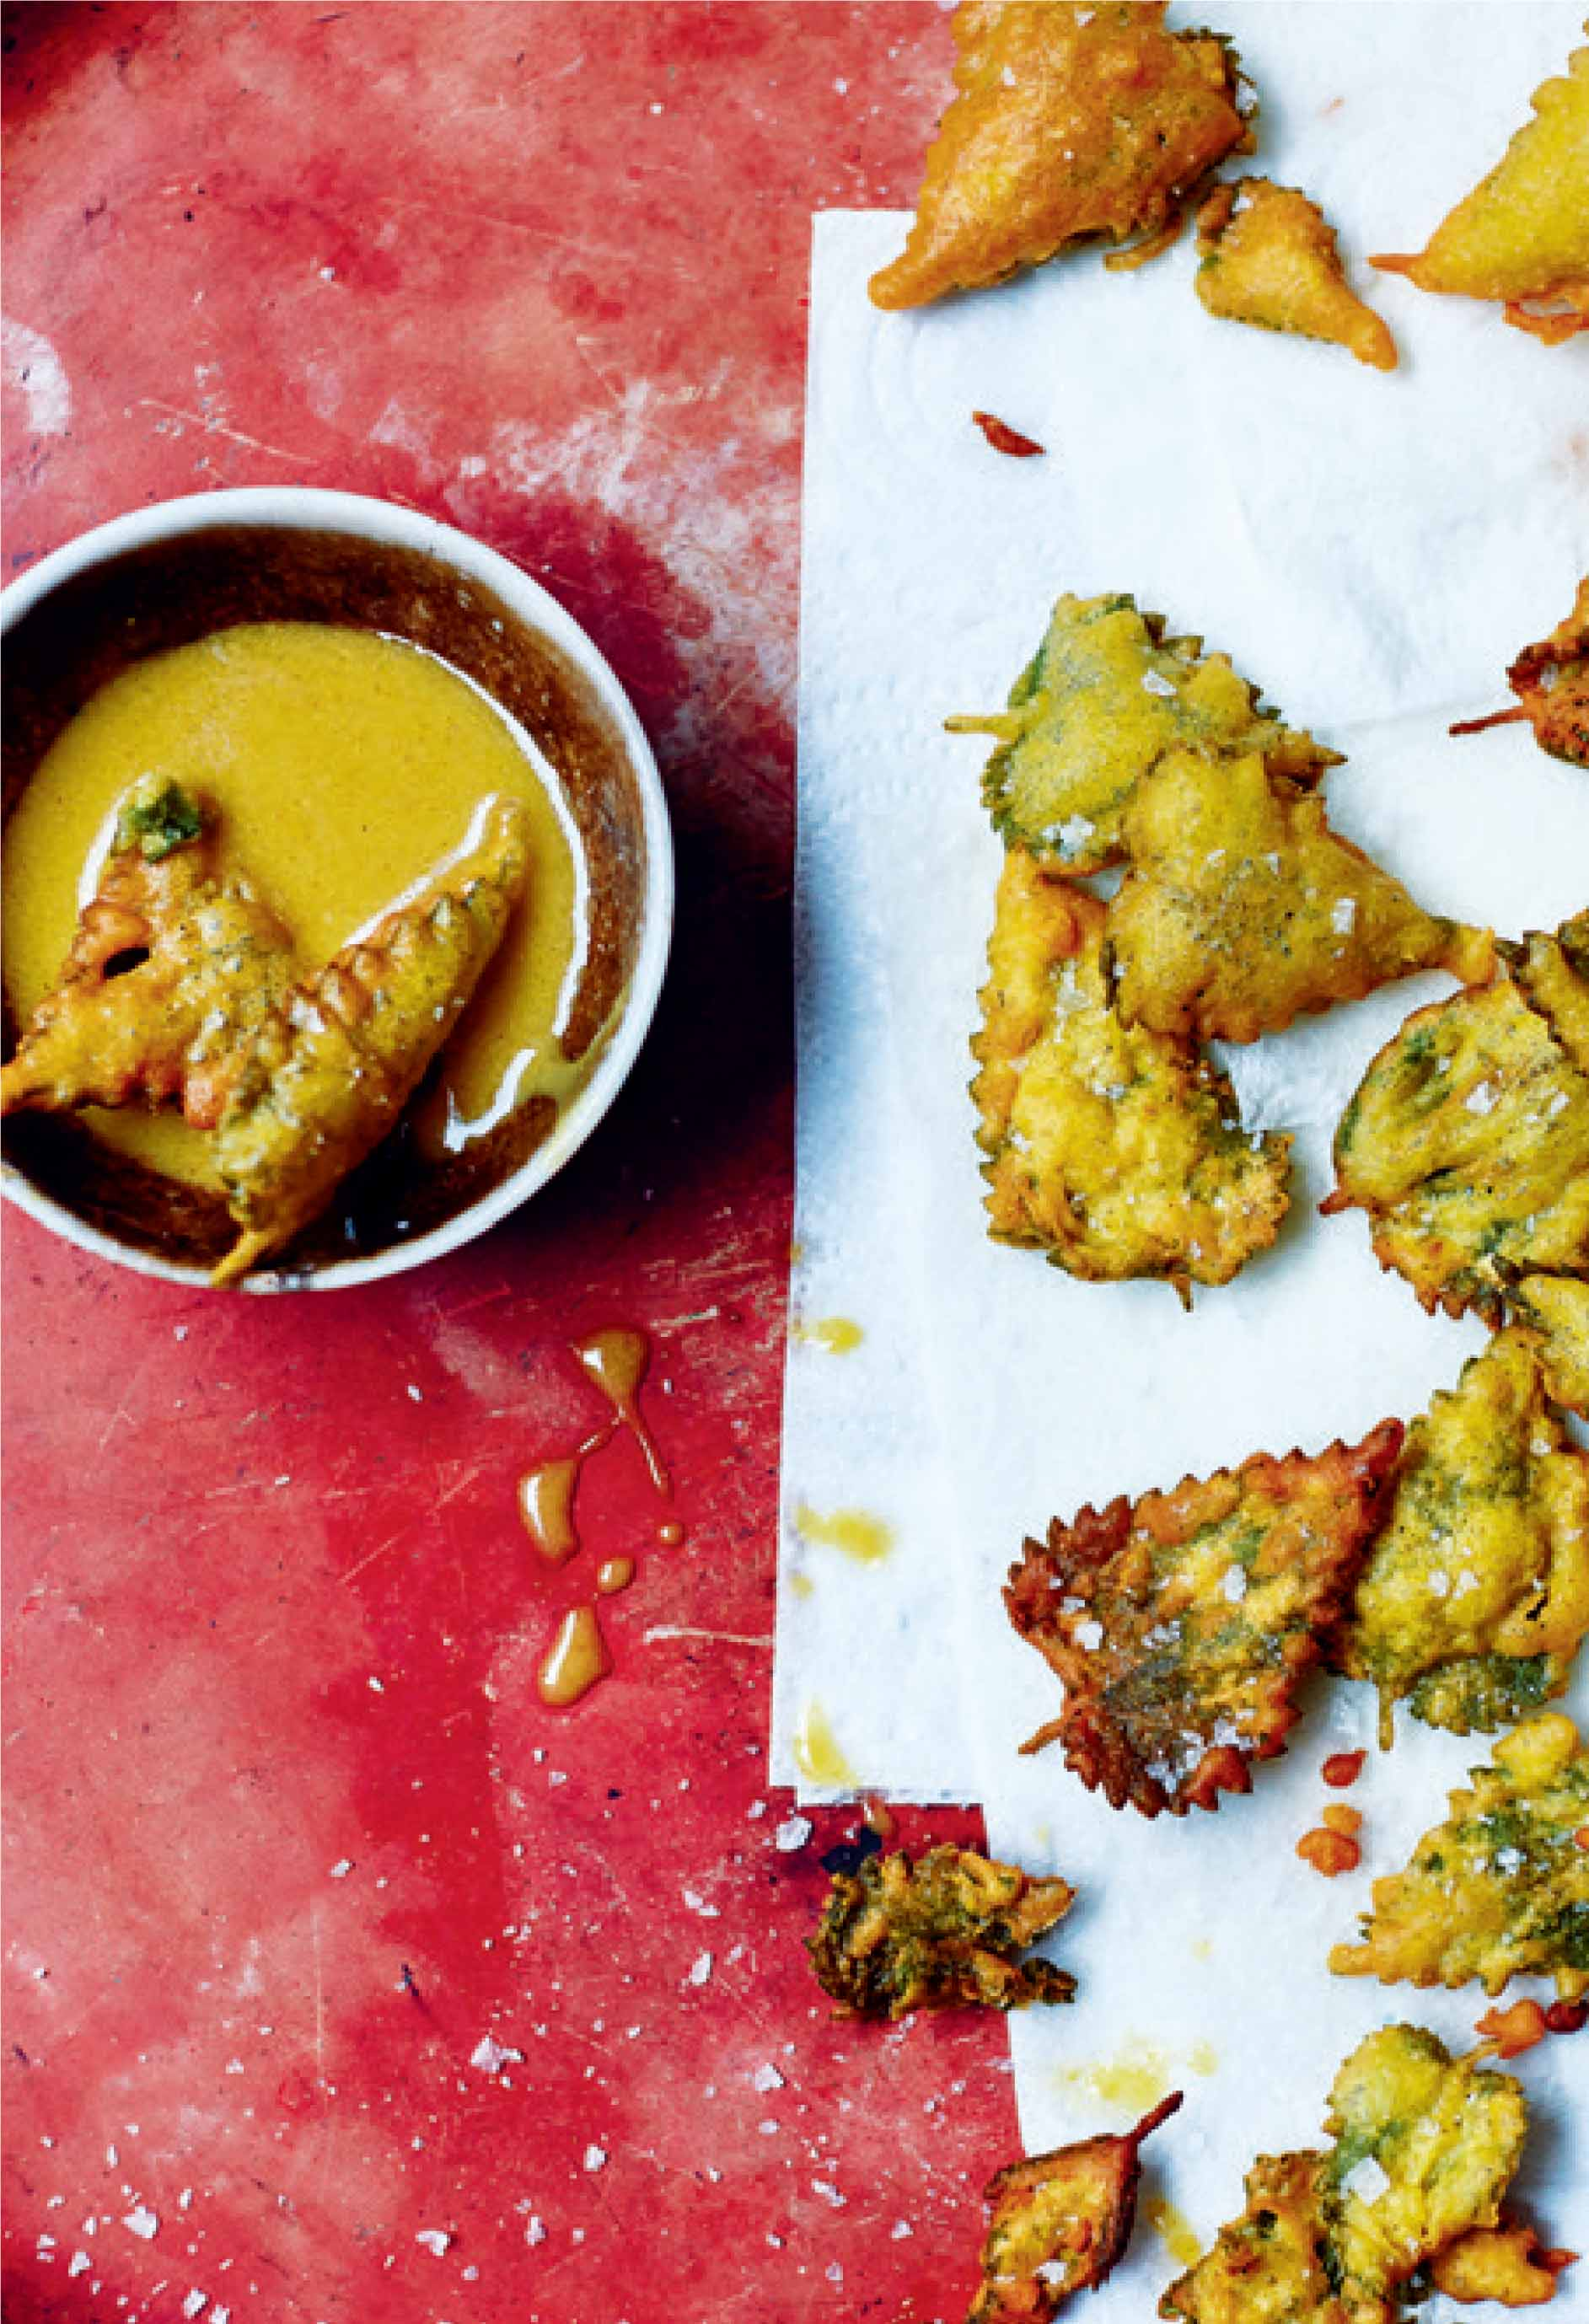 Nettle leaves in beer batter with honey mustard dip